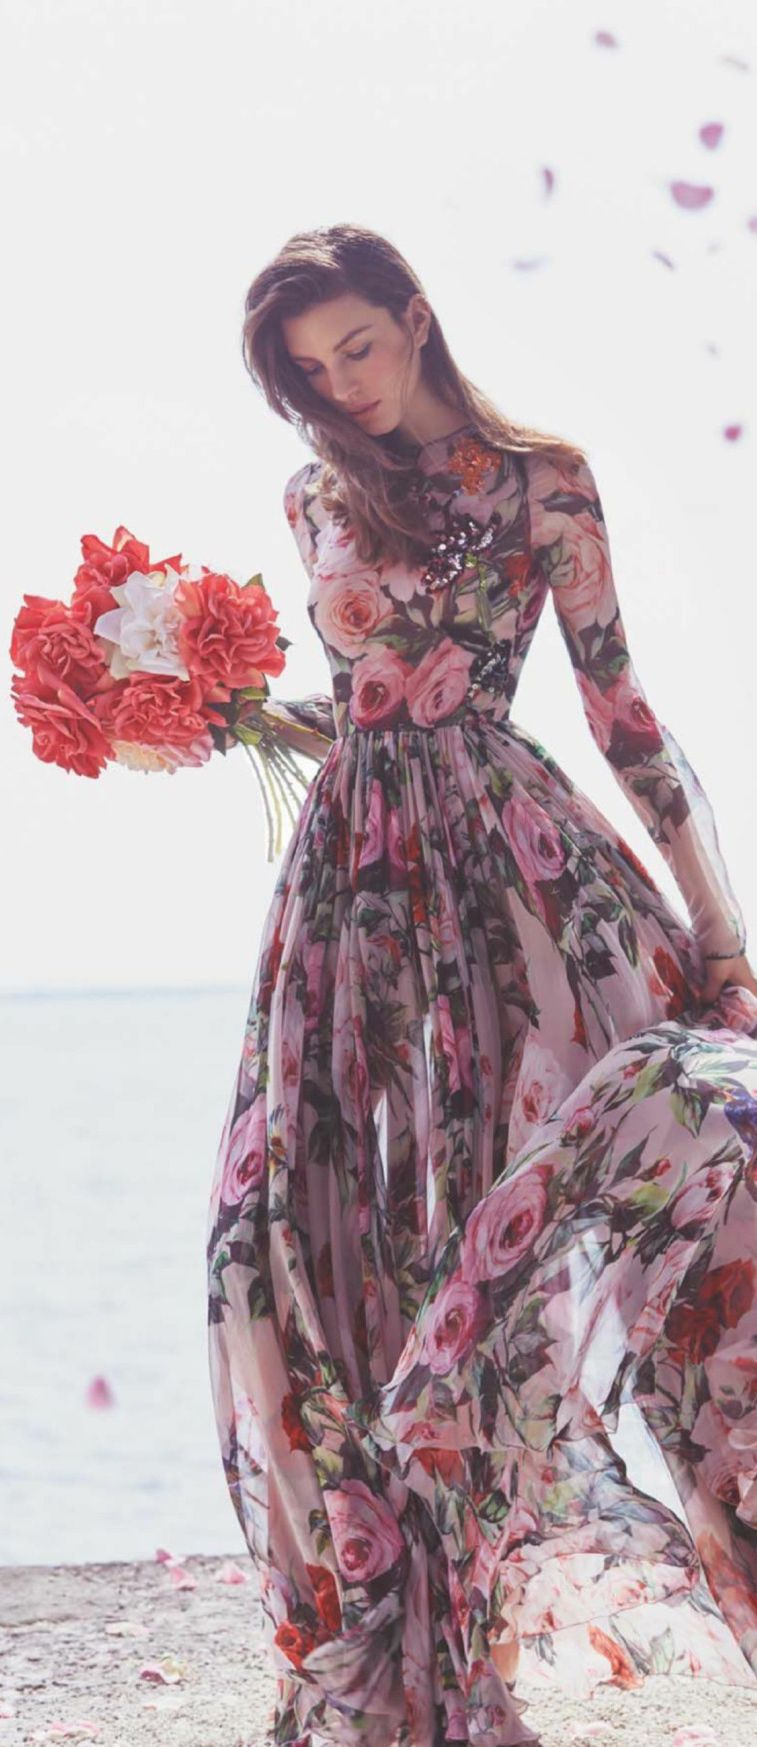 Floral dress dress pinterest clothes floral and gowns